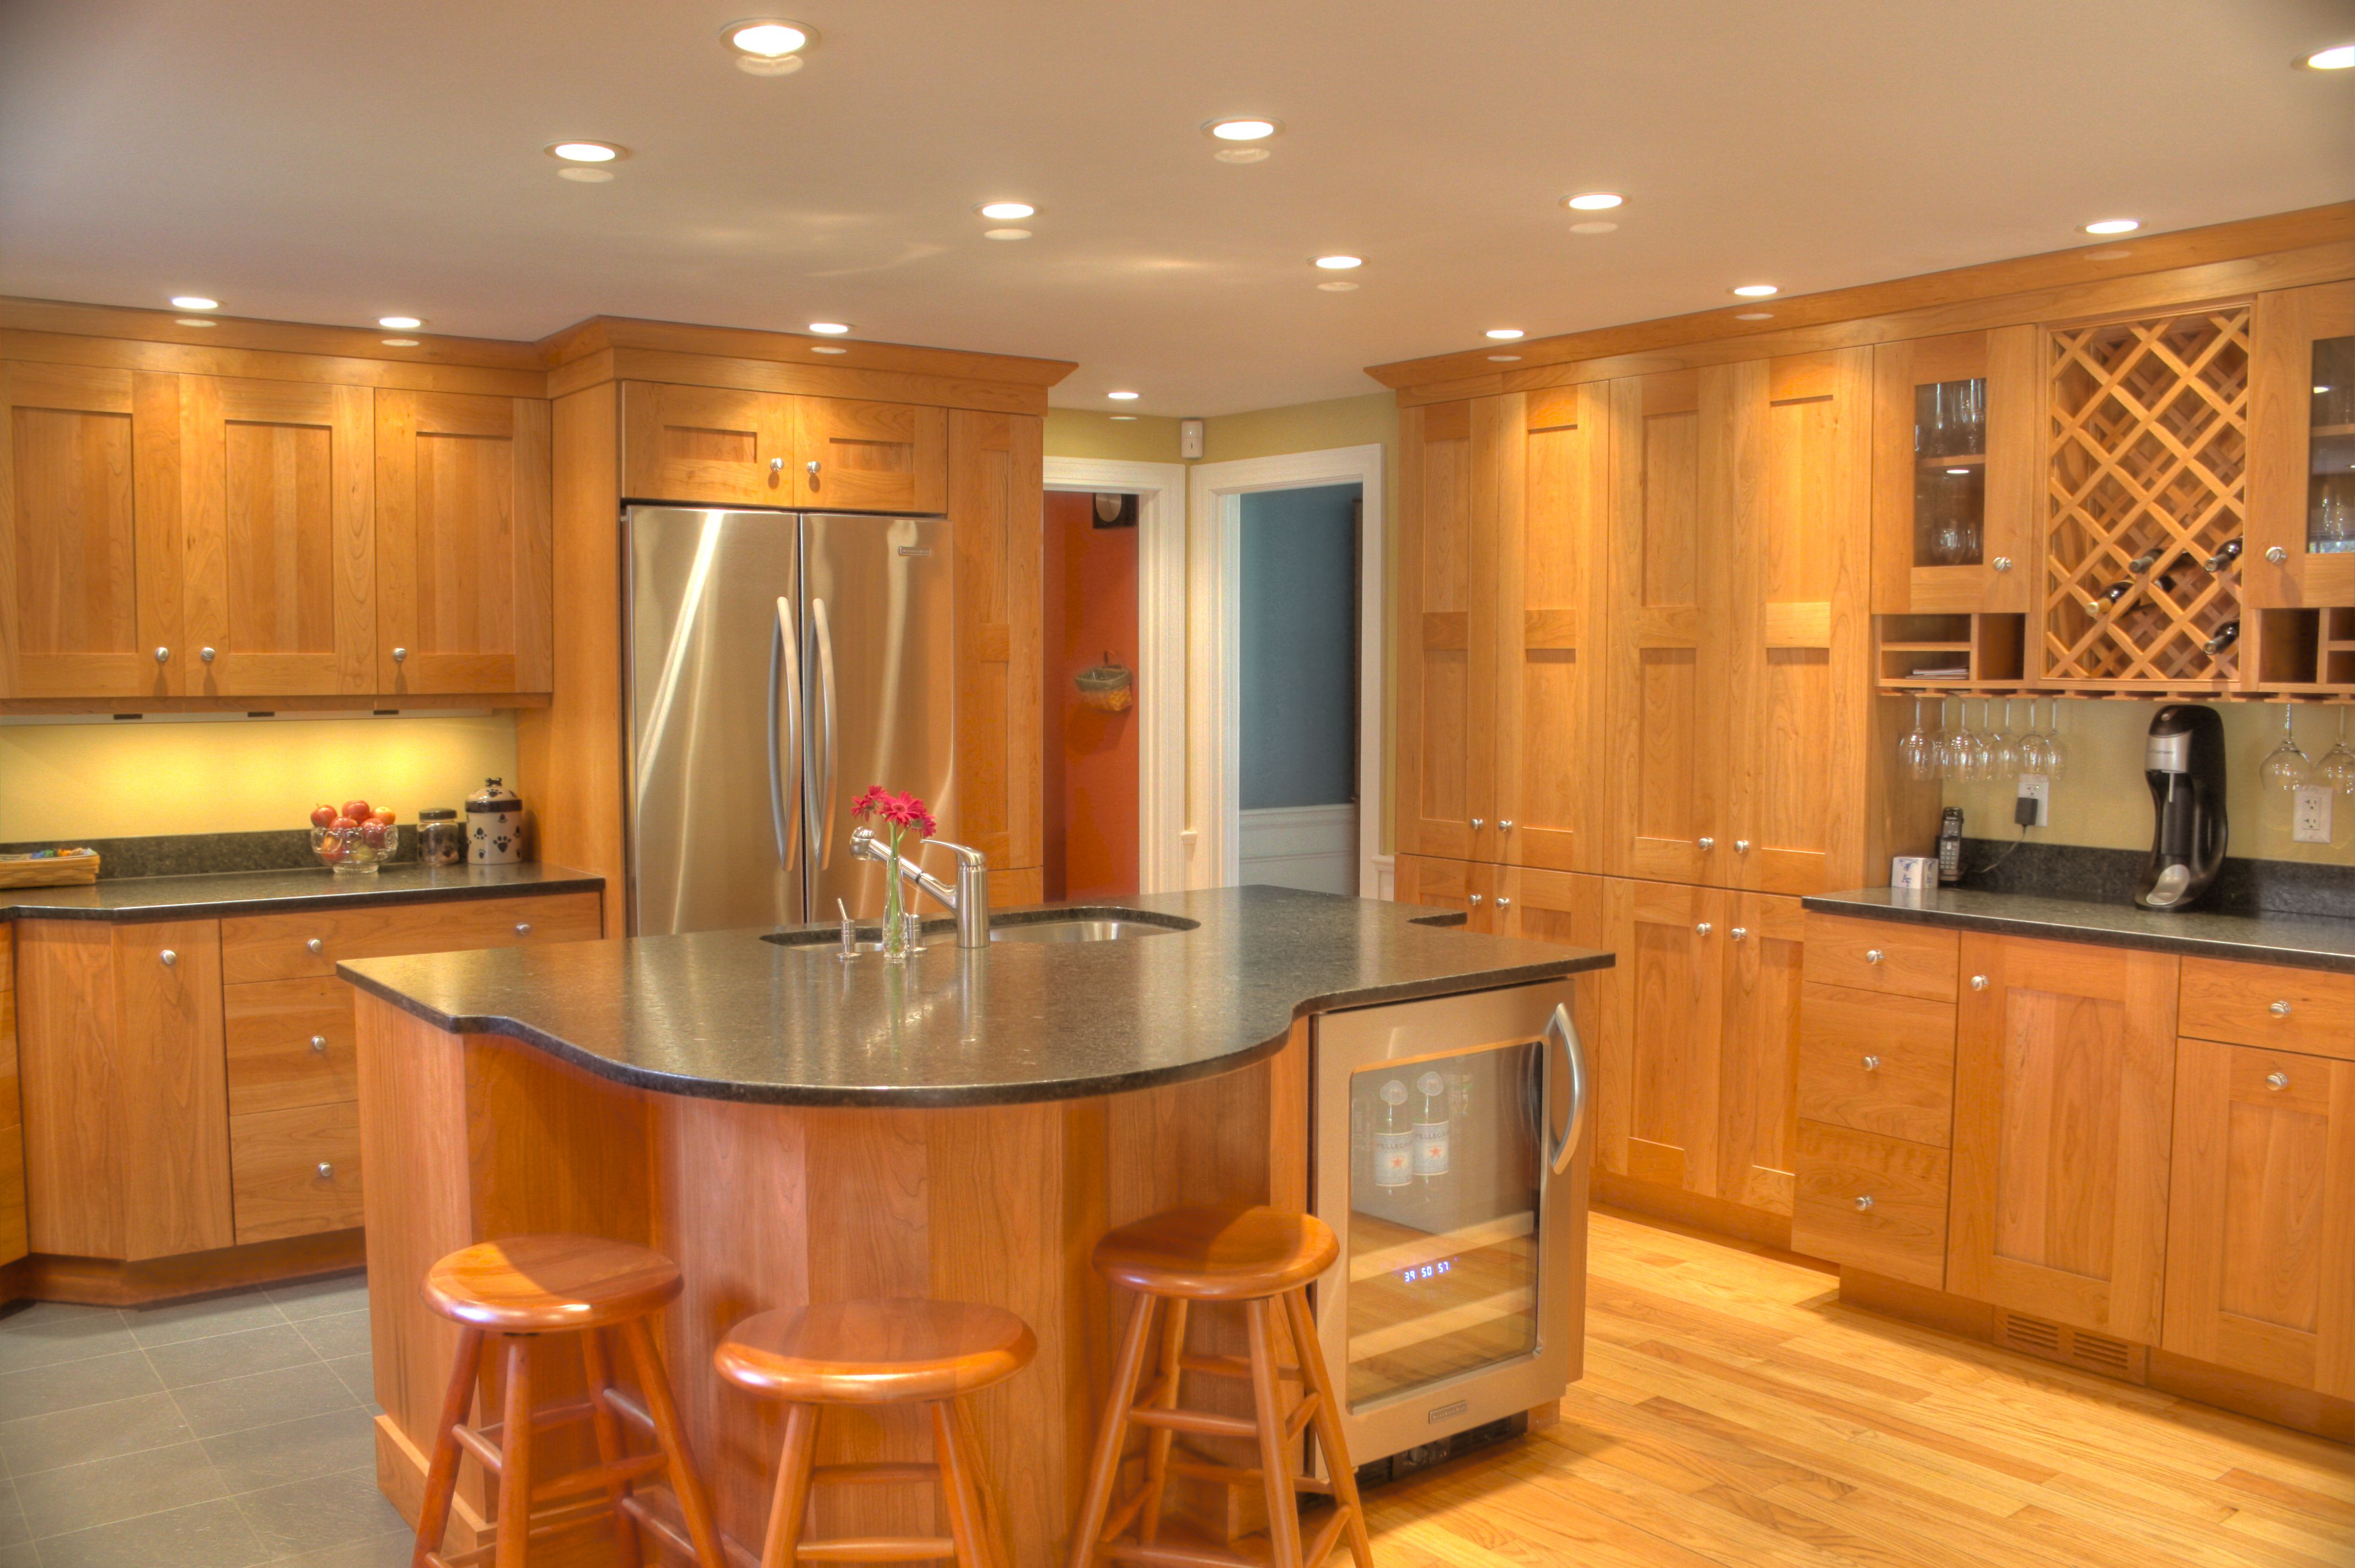 Cherry Wood Kitchens Stainless Steel Appliances Wine Fridge And Wine Storage Island With Sink Kitchen Cabinetry Cherry Cabinets Kitchen Cherry Wood Cabinets